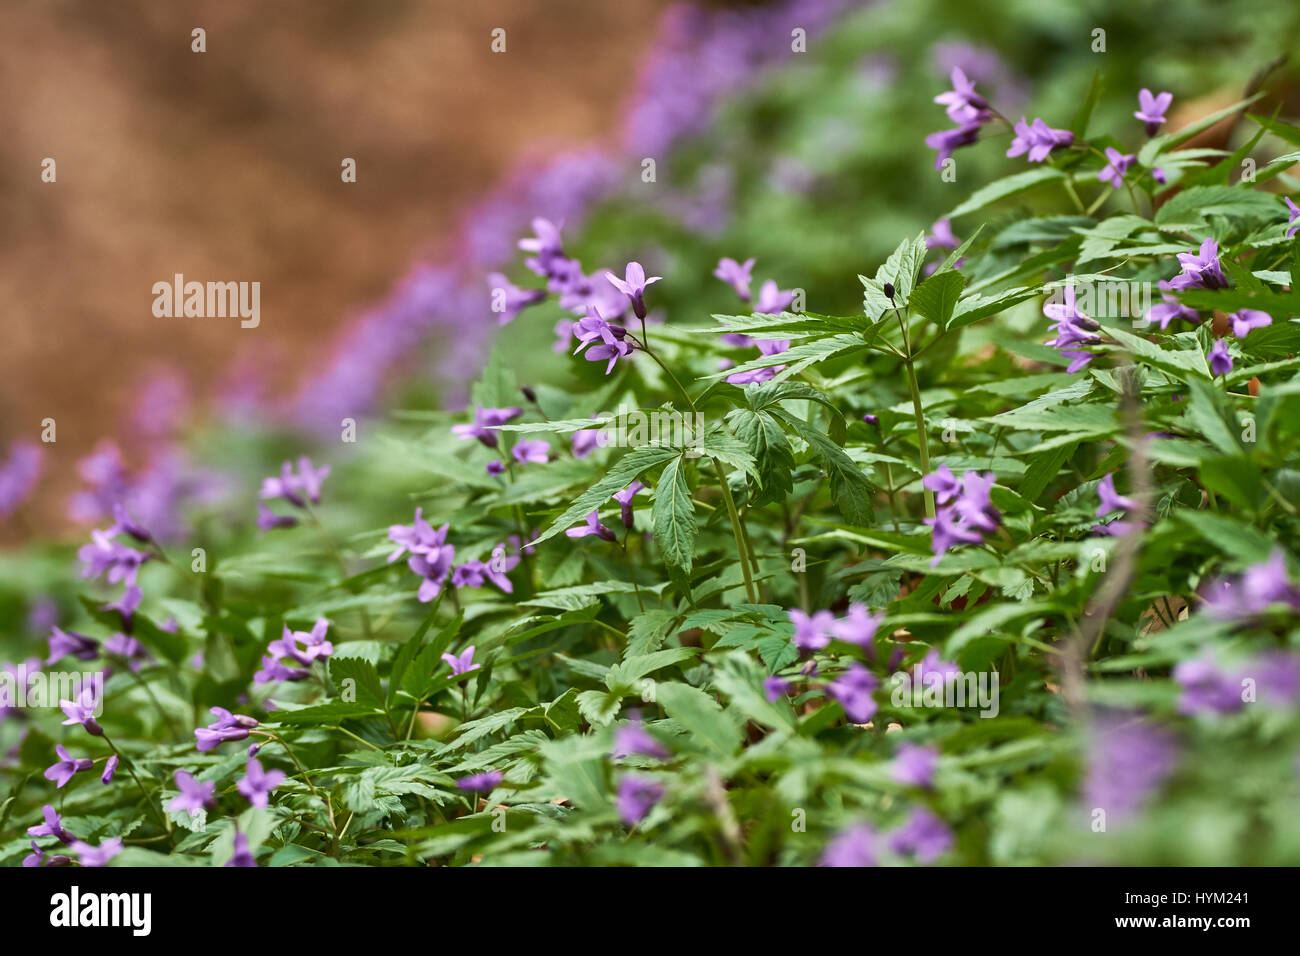 Small Purple Flowers In A Field During Spring Time Stock Photo